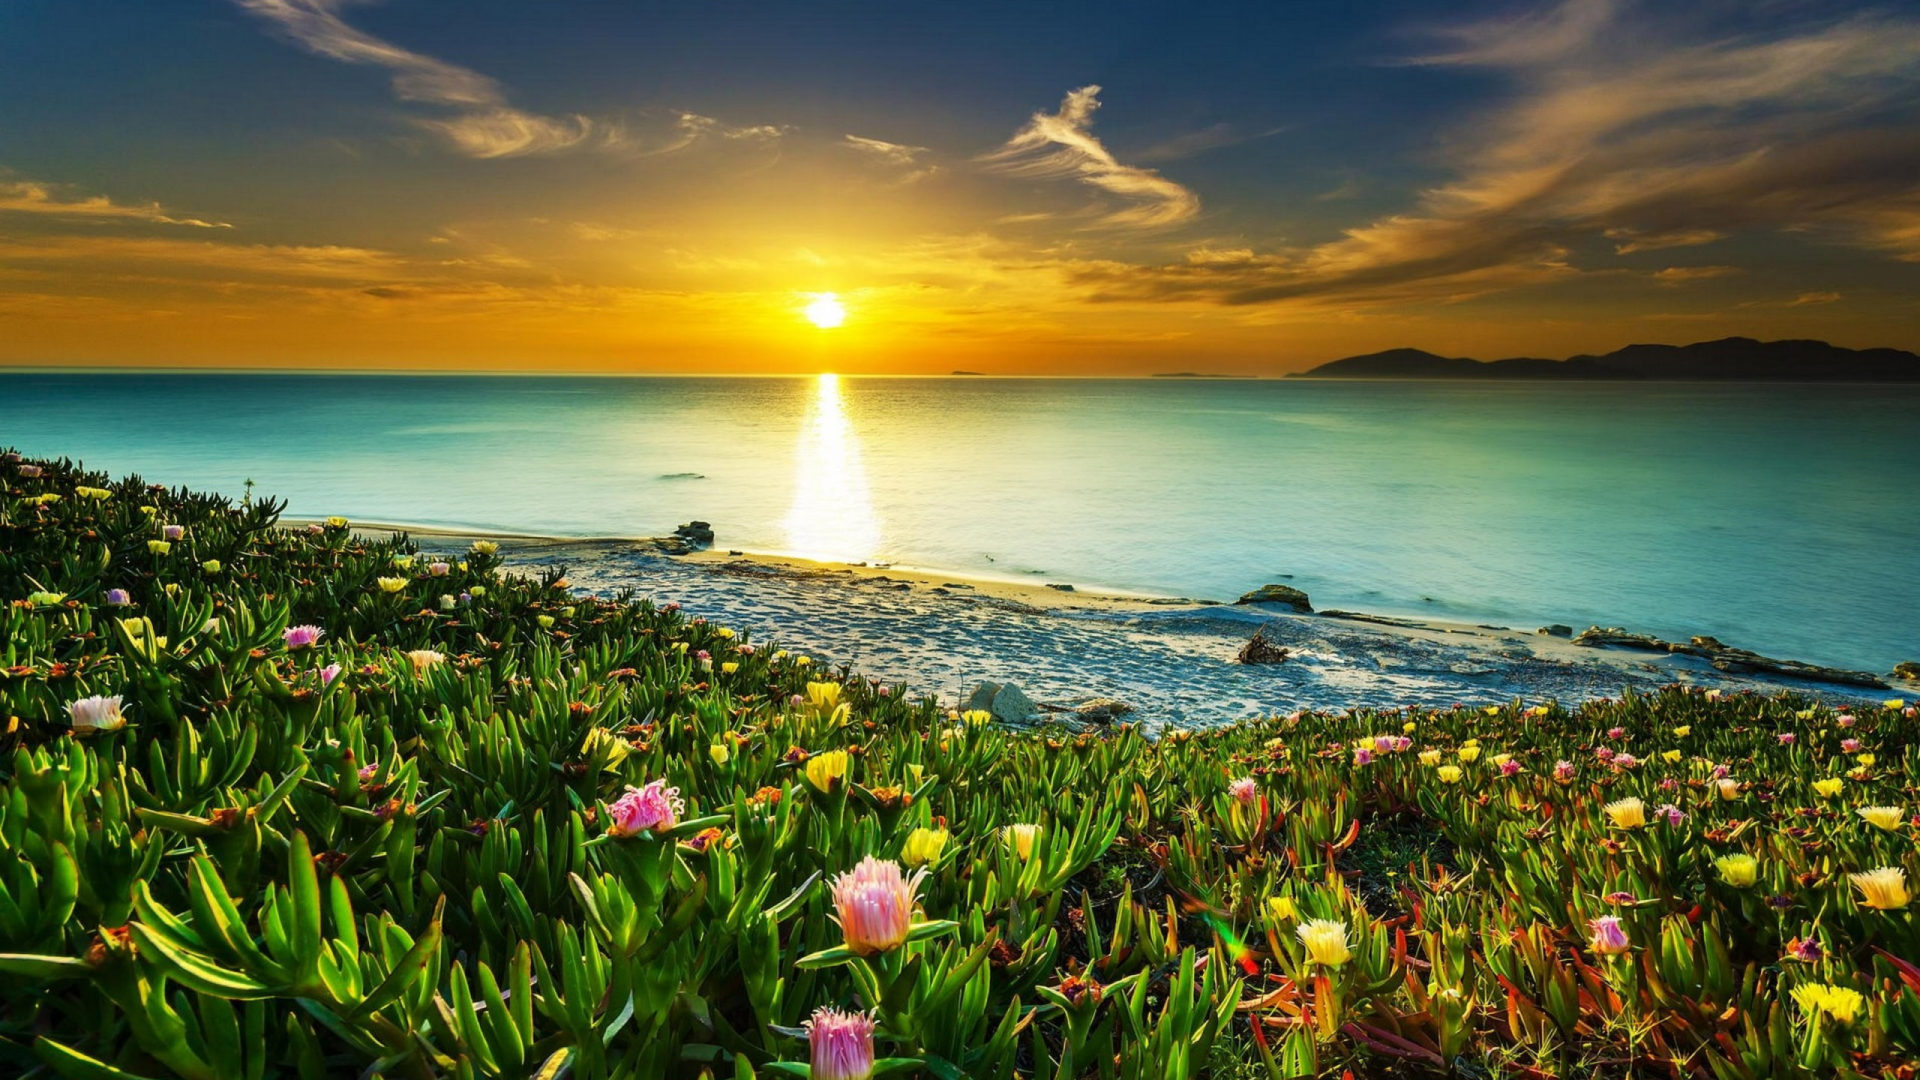 Animals Wallpapers For Mobile Free Download Sea Coast Meadow With Tropical Flowers Sandy Beach Calm